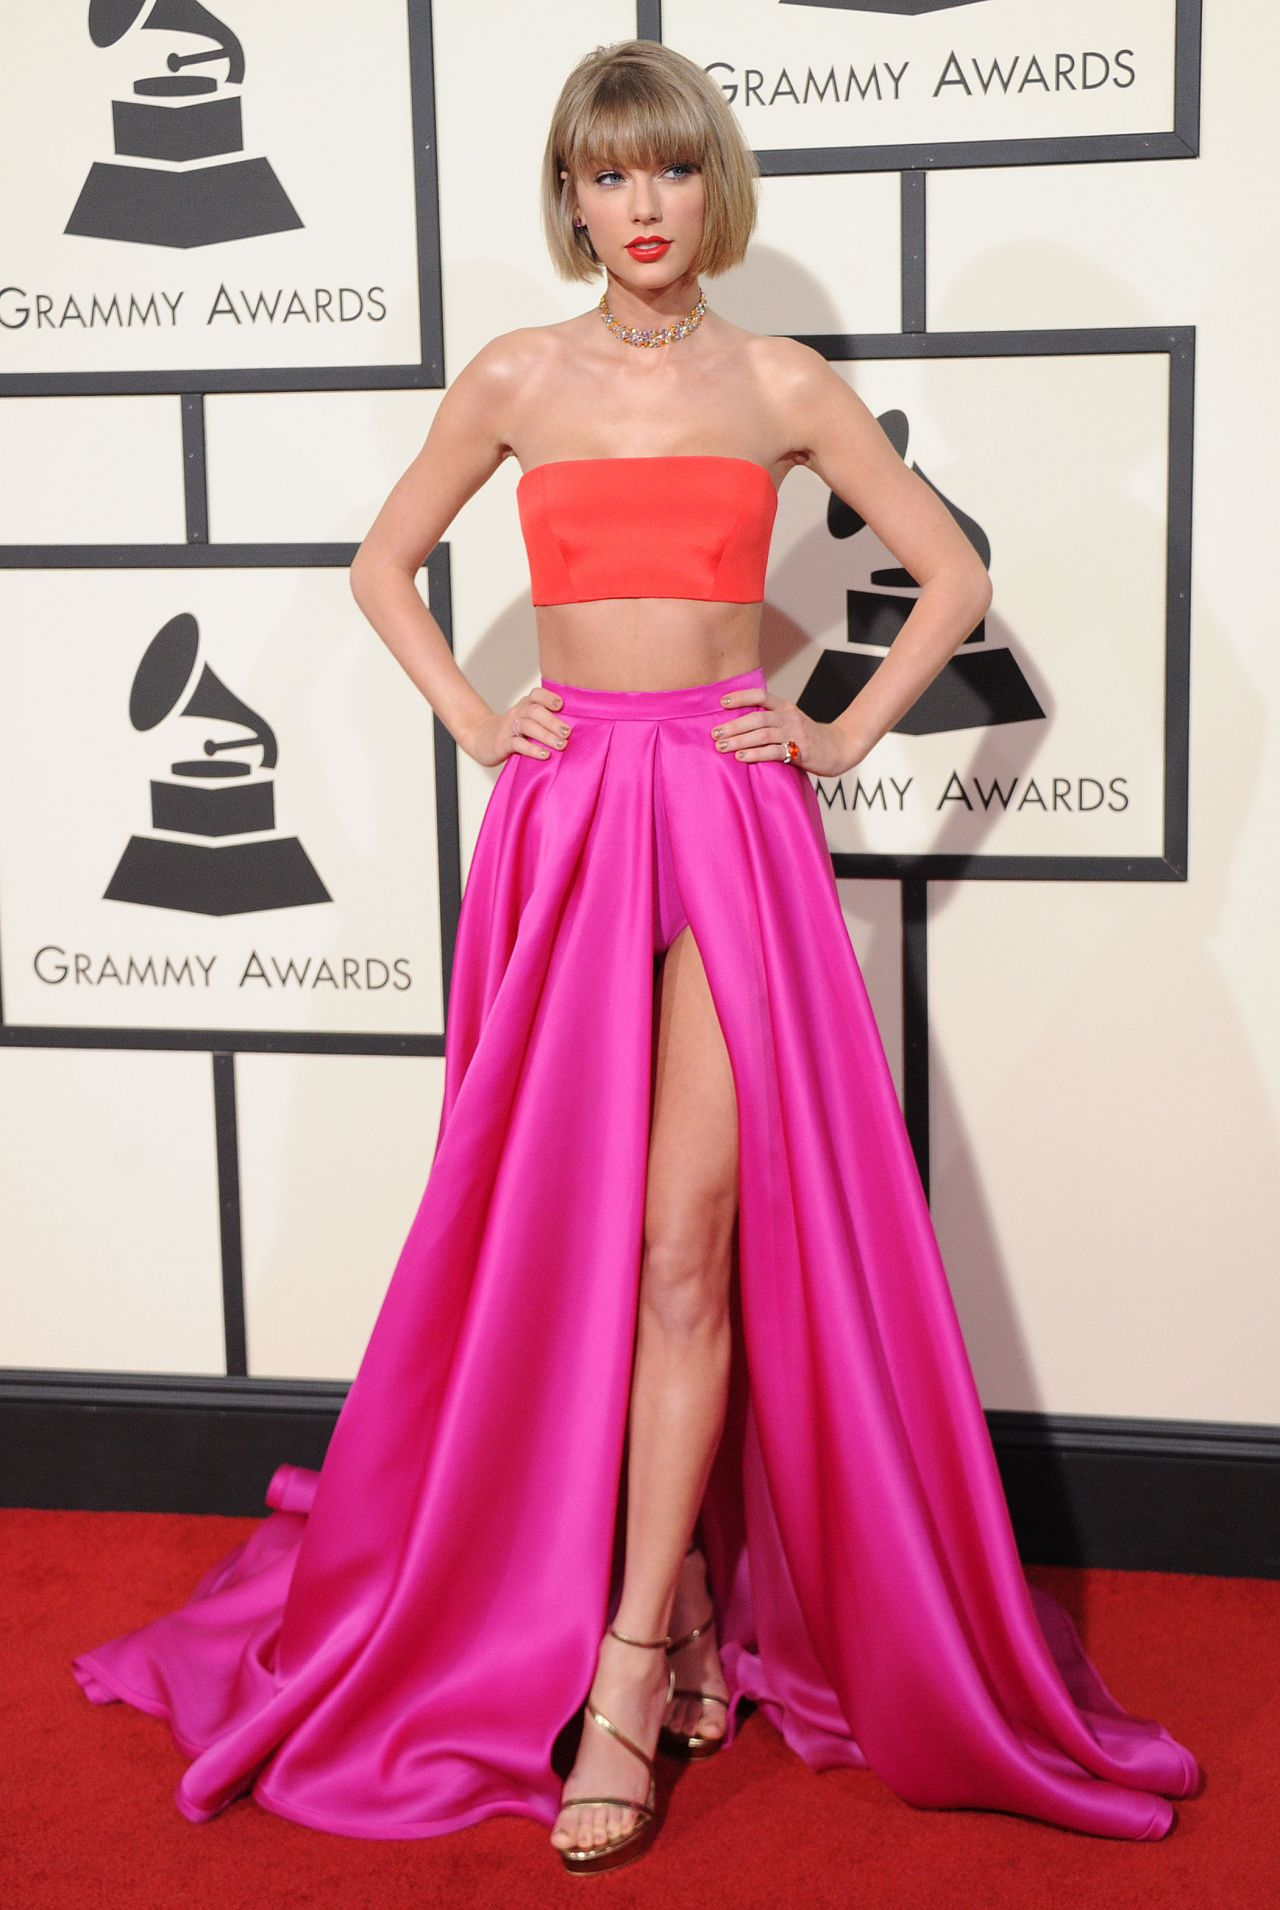 taylor-swift-2016-grammy-awards-in-los-angeles-ca-1